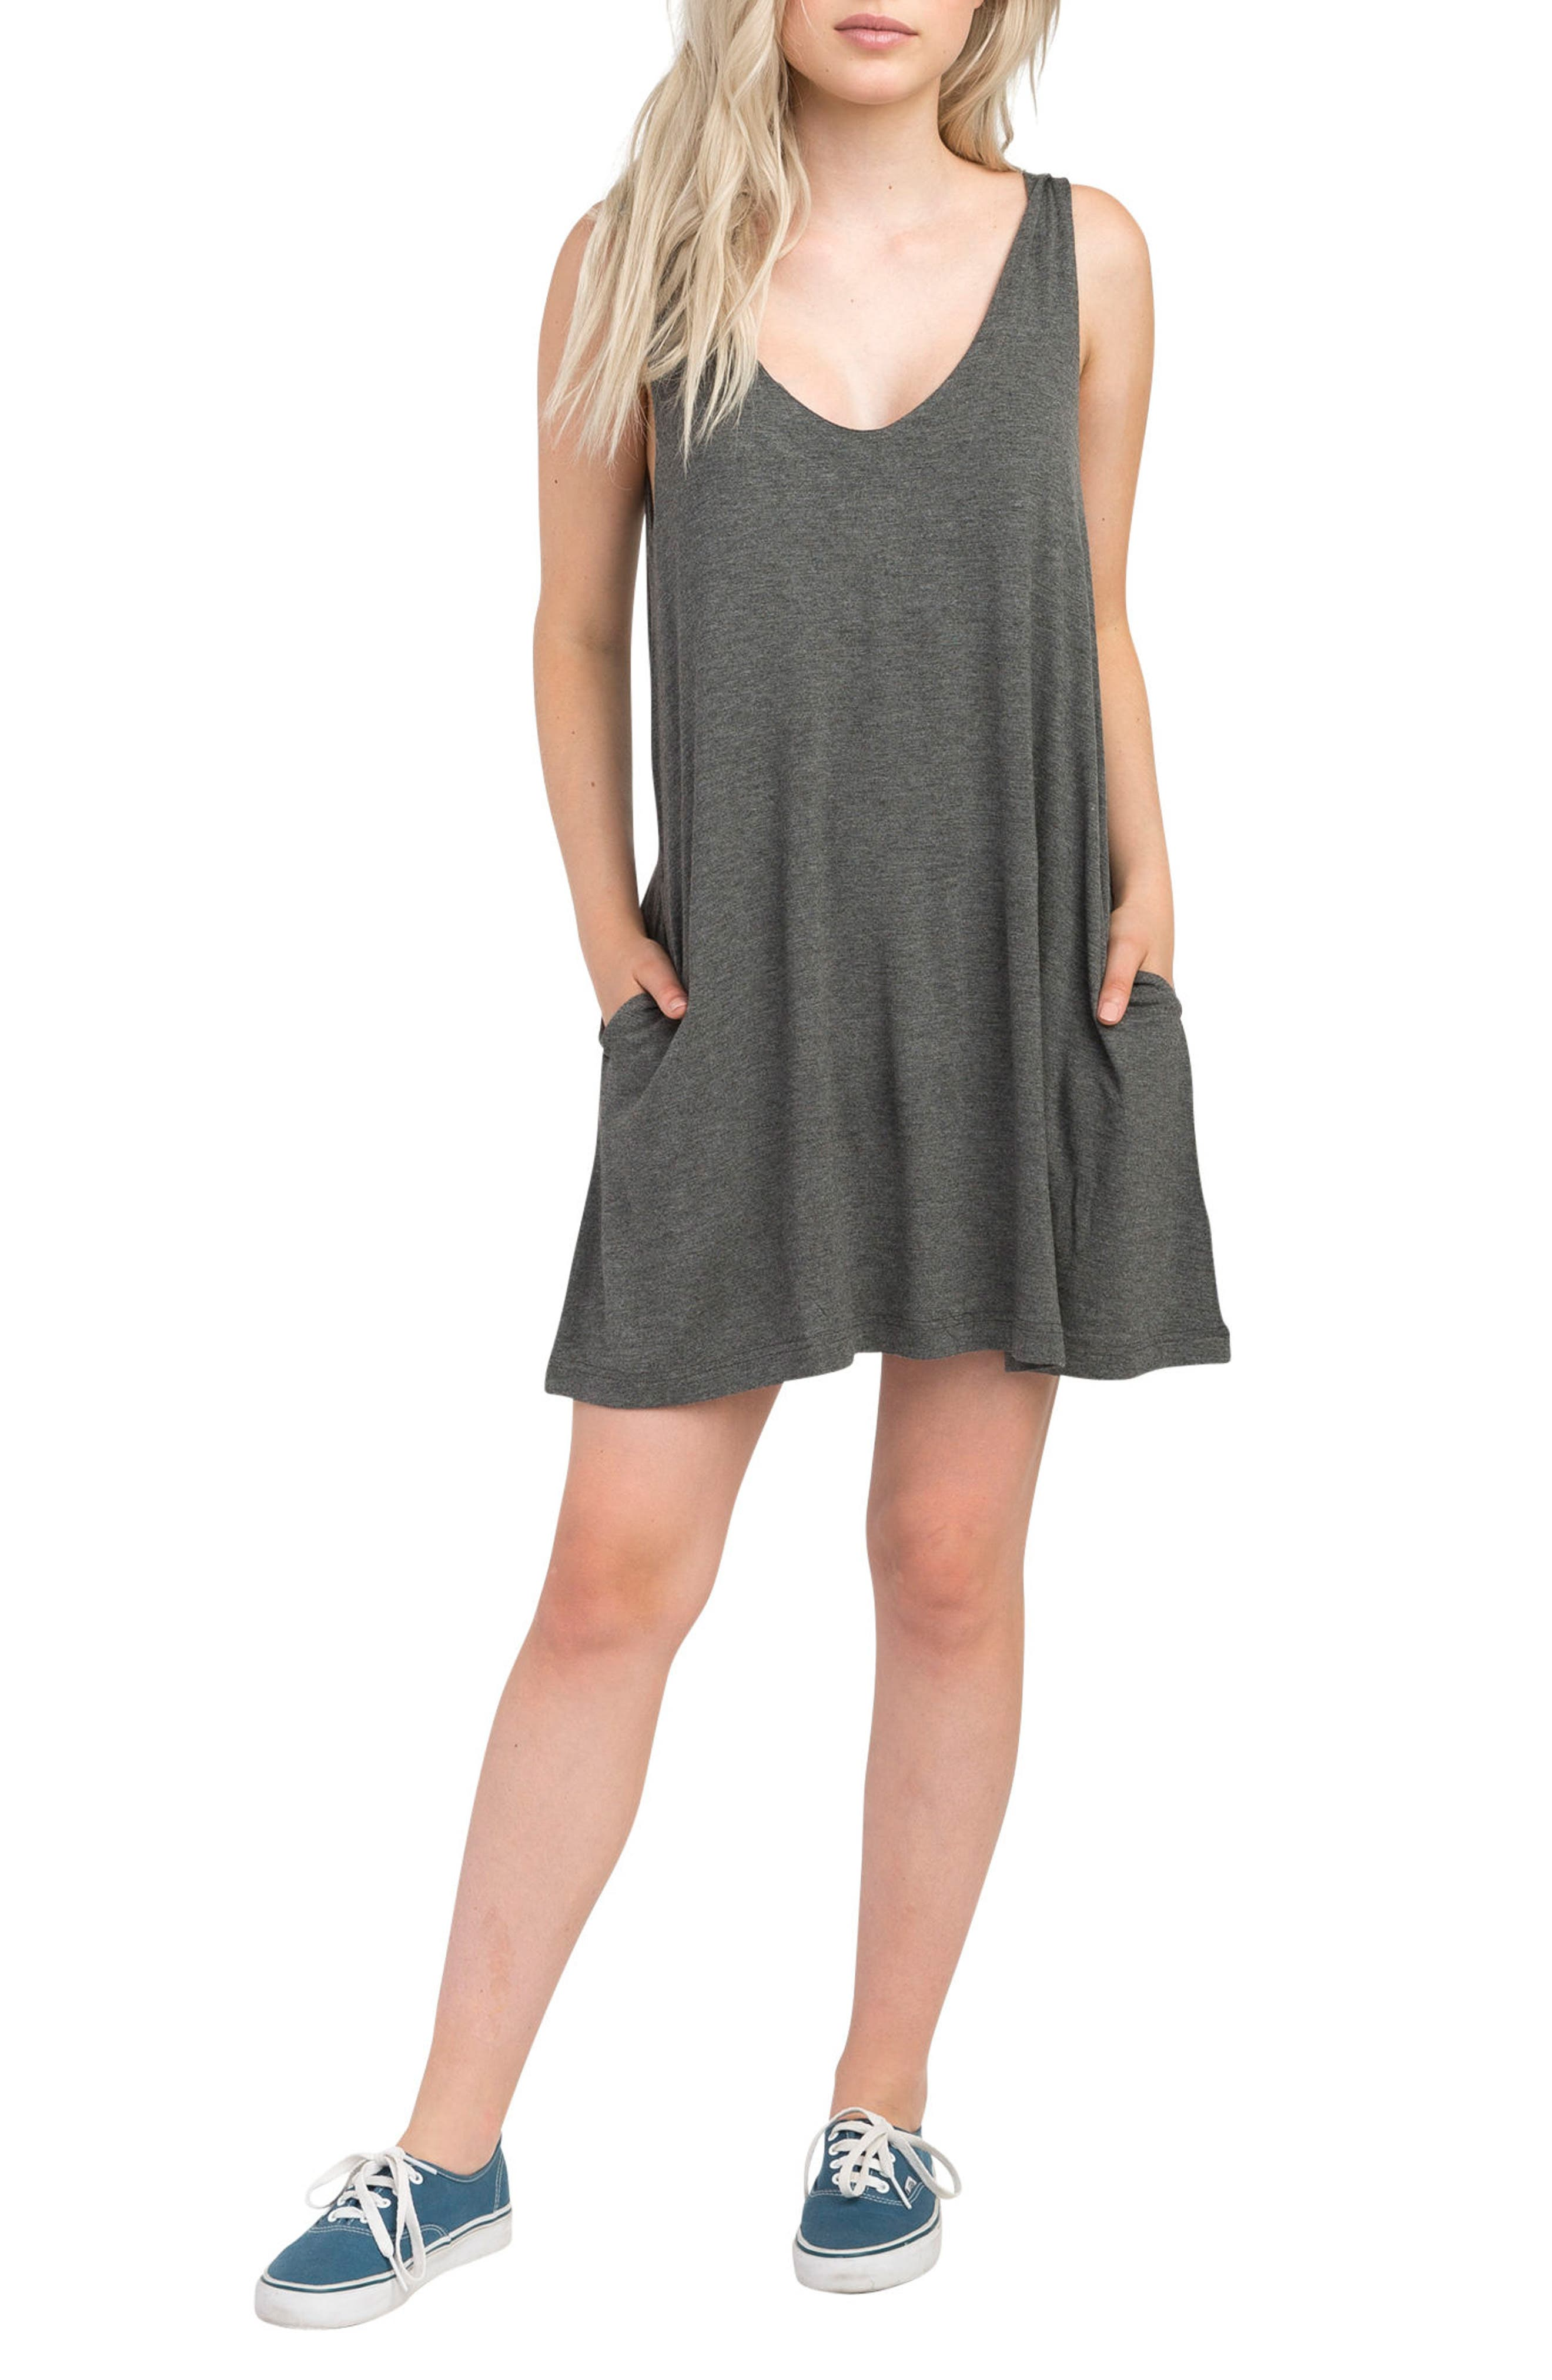 Chances Swing Dress,                             Main thumbnail 1, color,                             Charcoal Heather